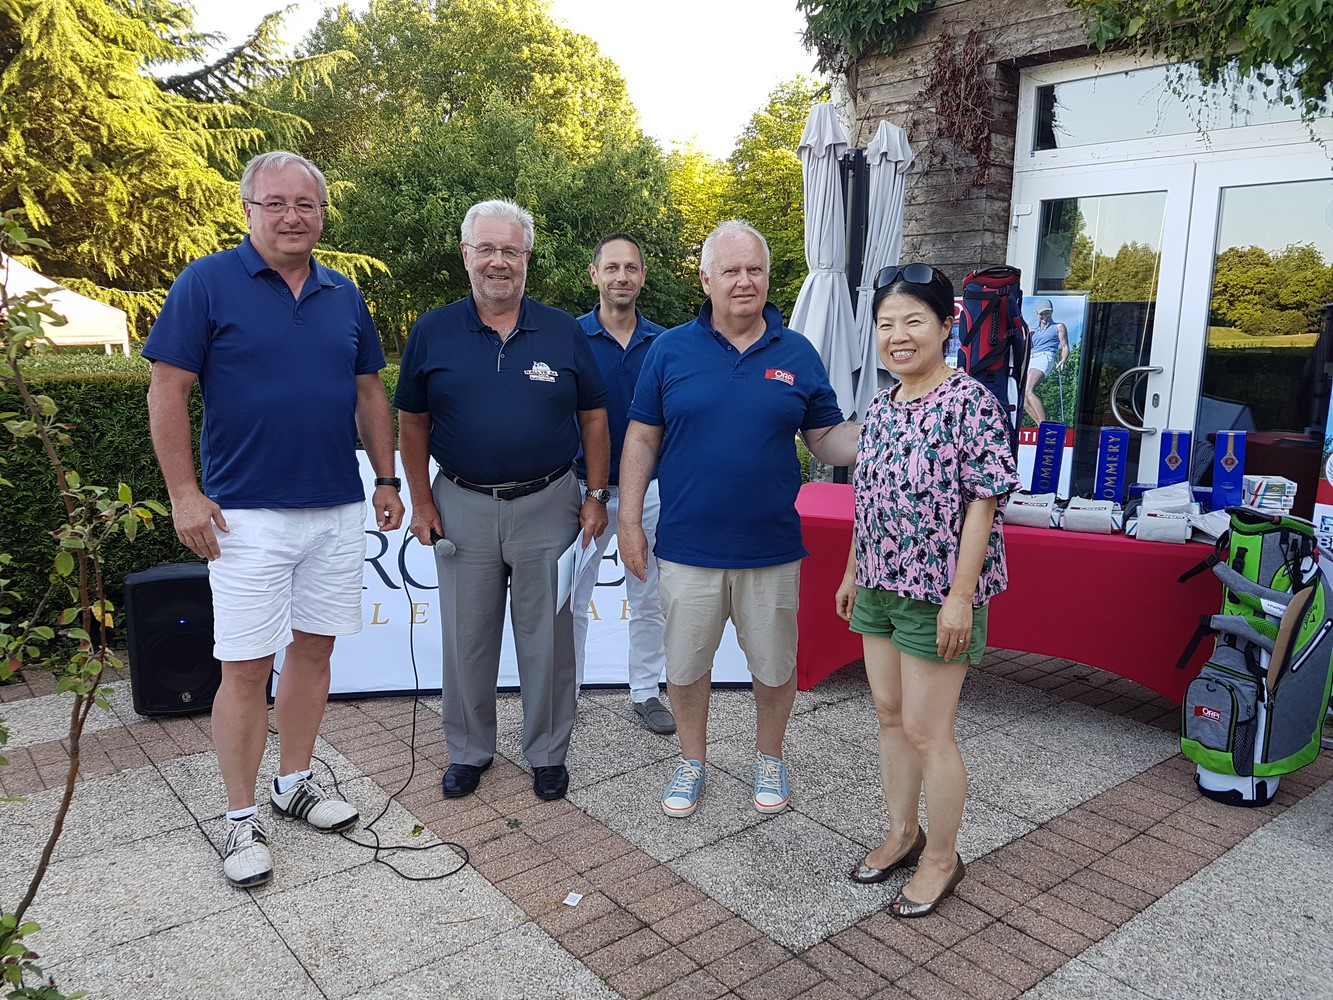 Orpi-golf-2017-Bussy-Guermantes-35